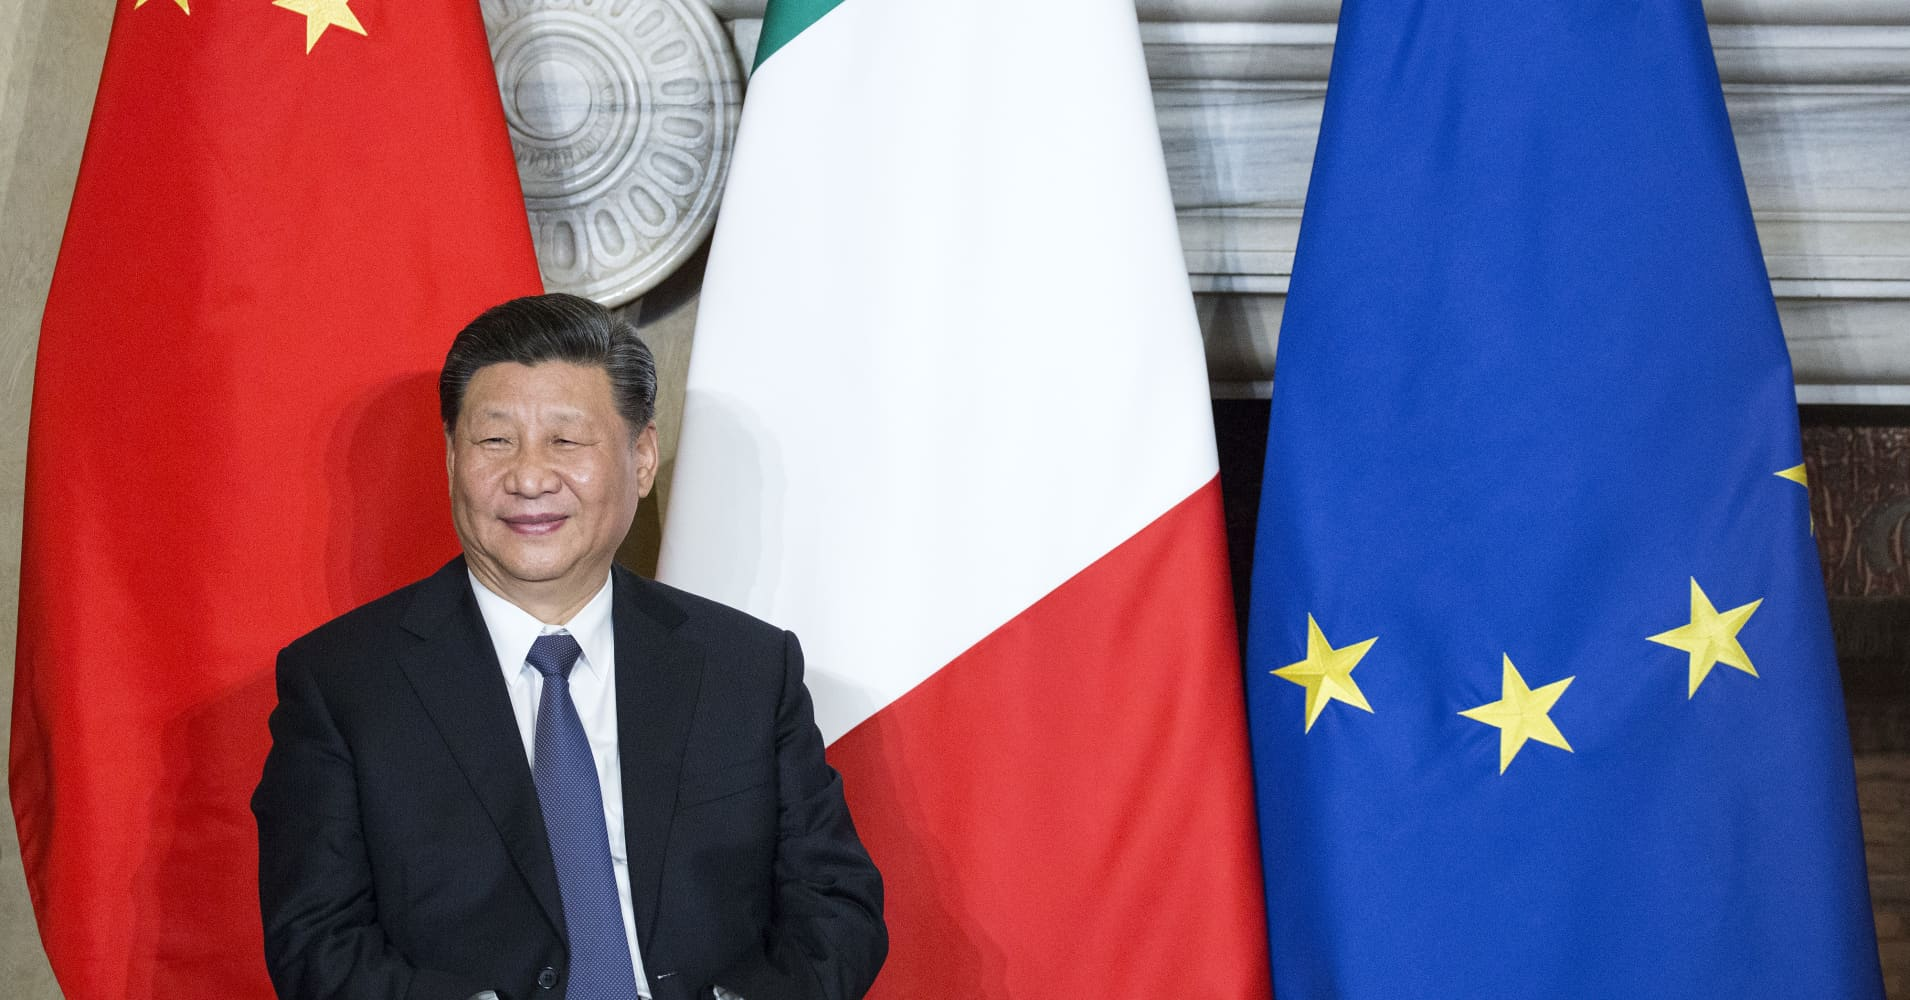 Europe may be playing spoiler to the elusive US-China trade deal